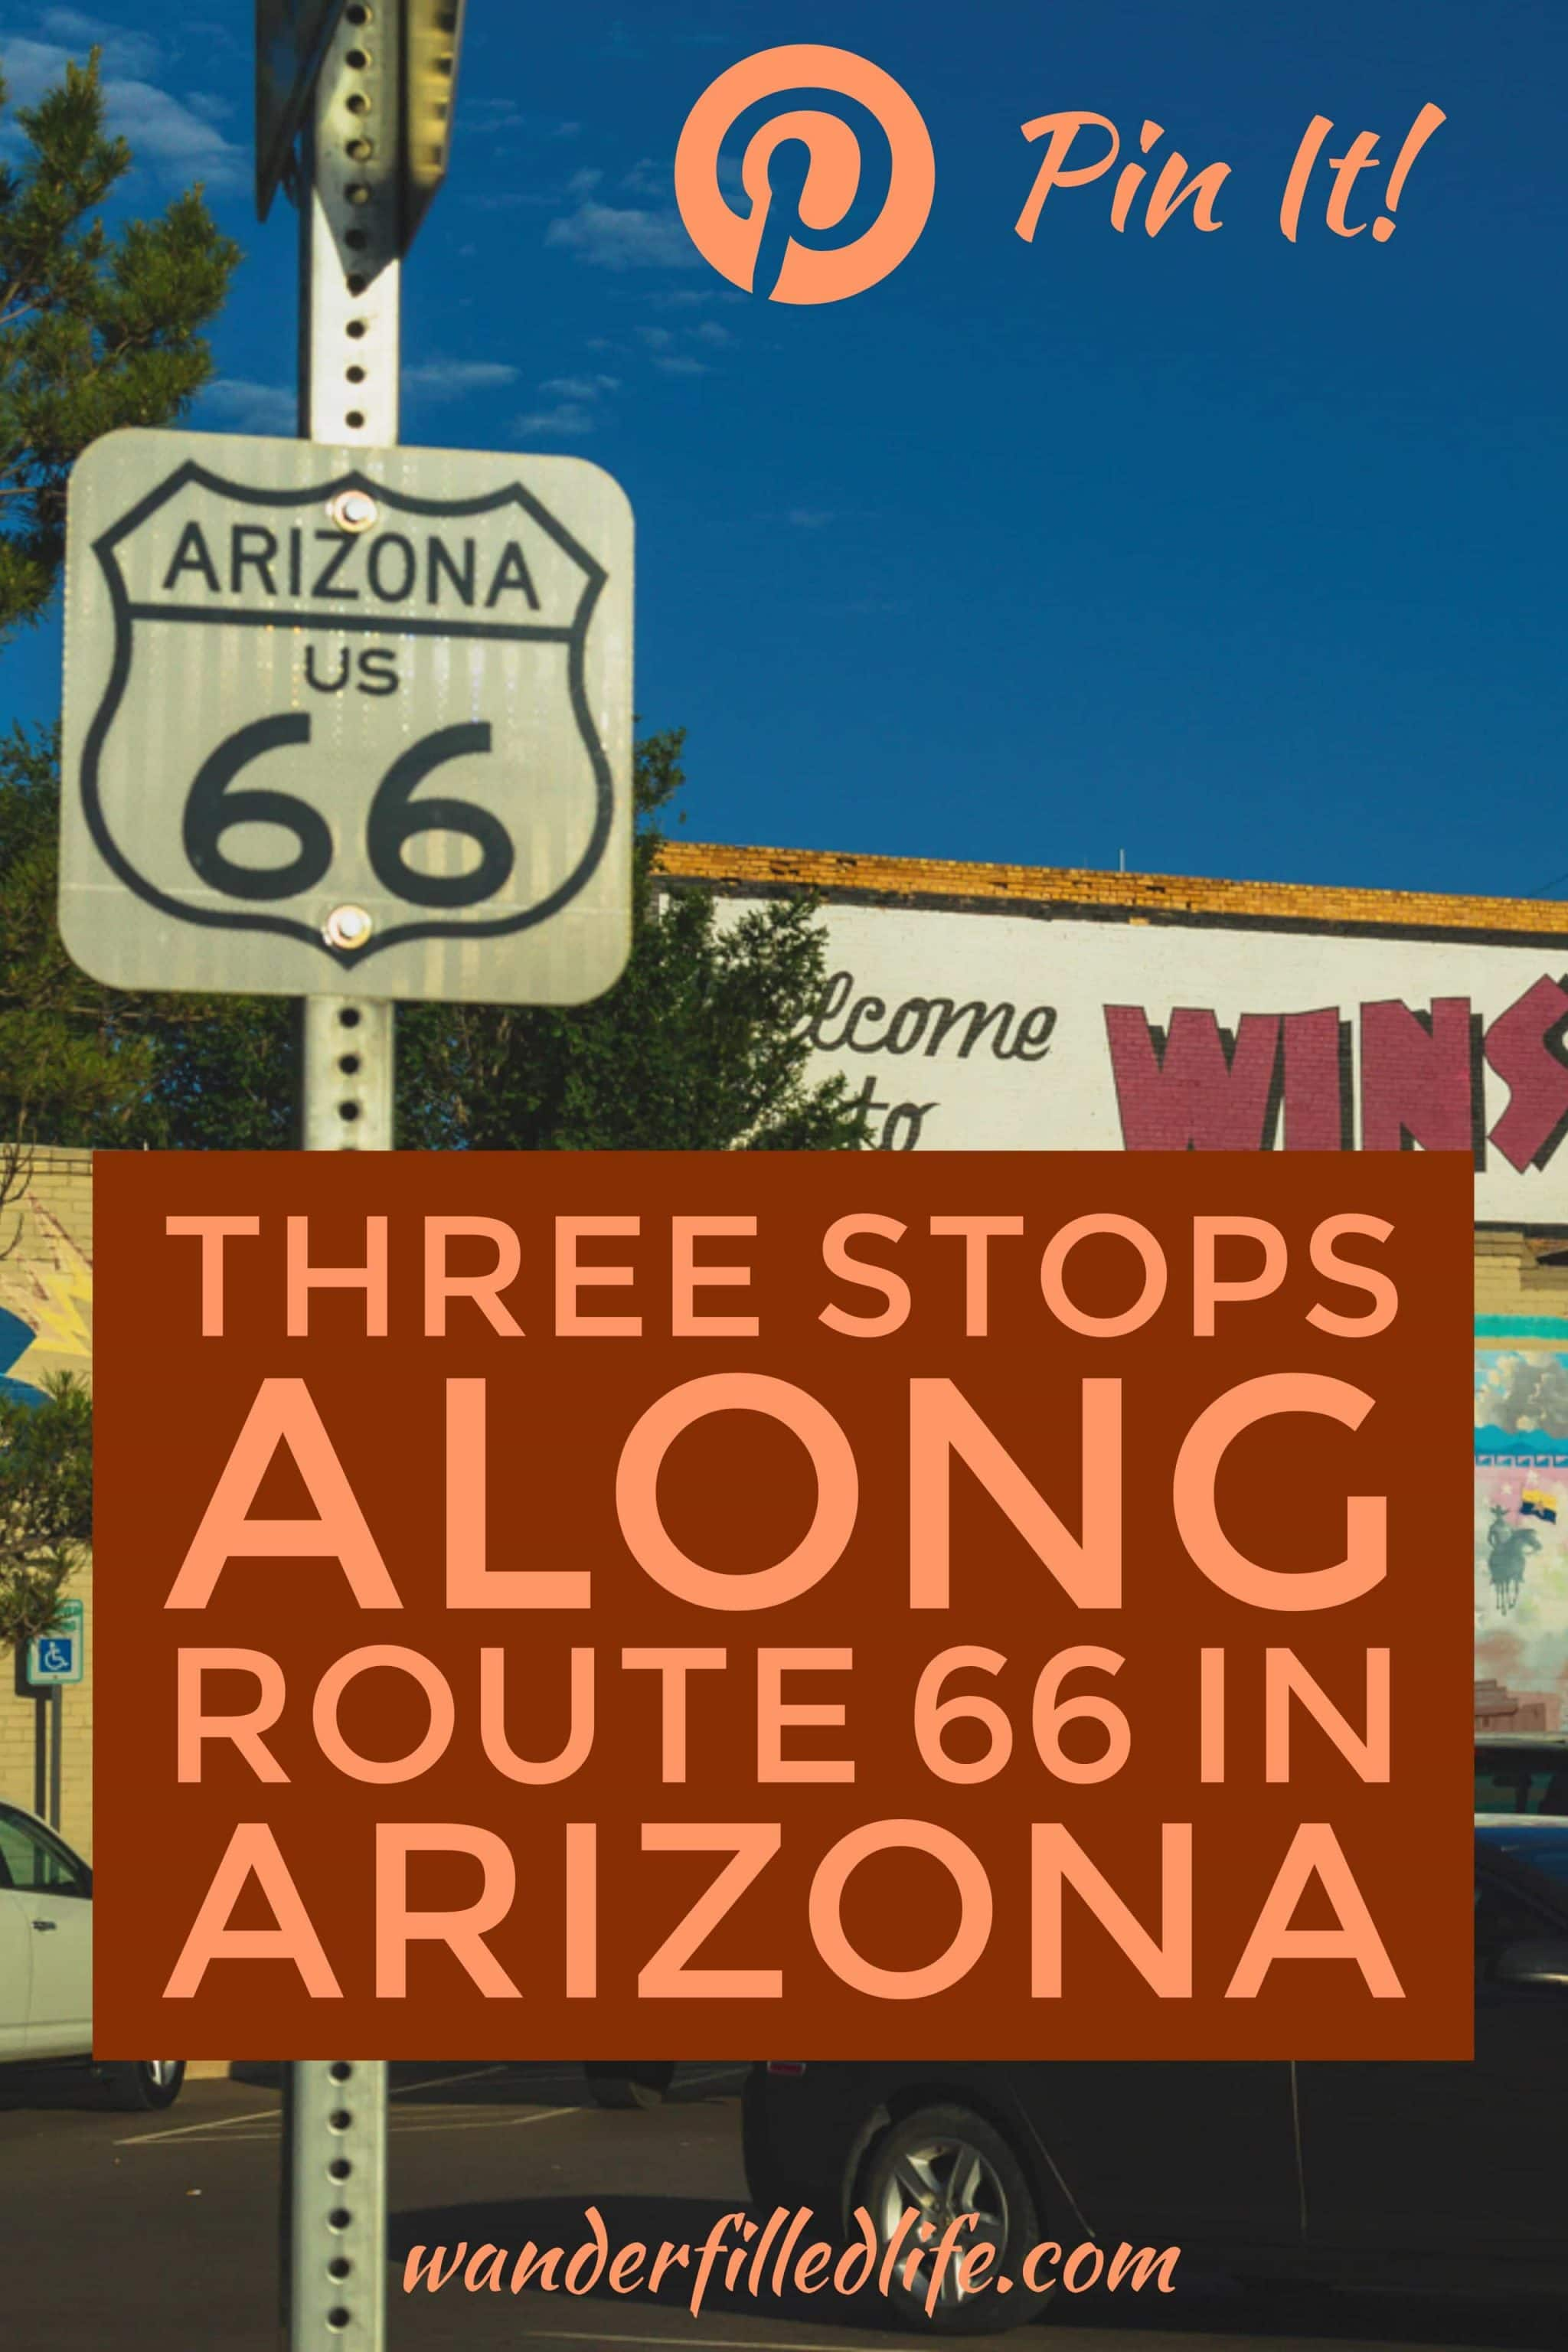 Three great stops along historic Route 66 (now I-40) in northeastern Arizona. Read about Petrified Forest National Park, Meteor Crater and Winslow, AZ.